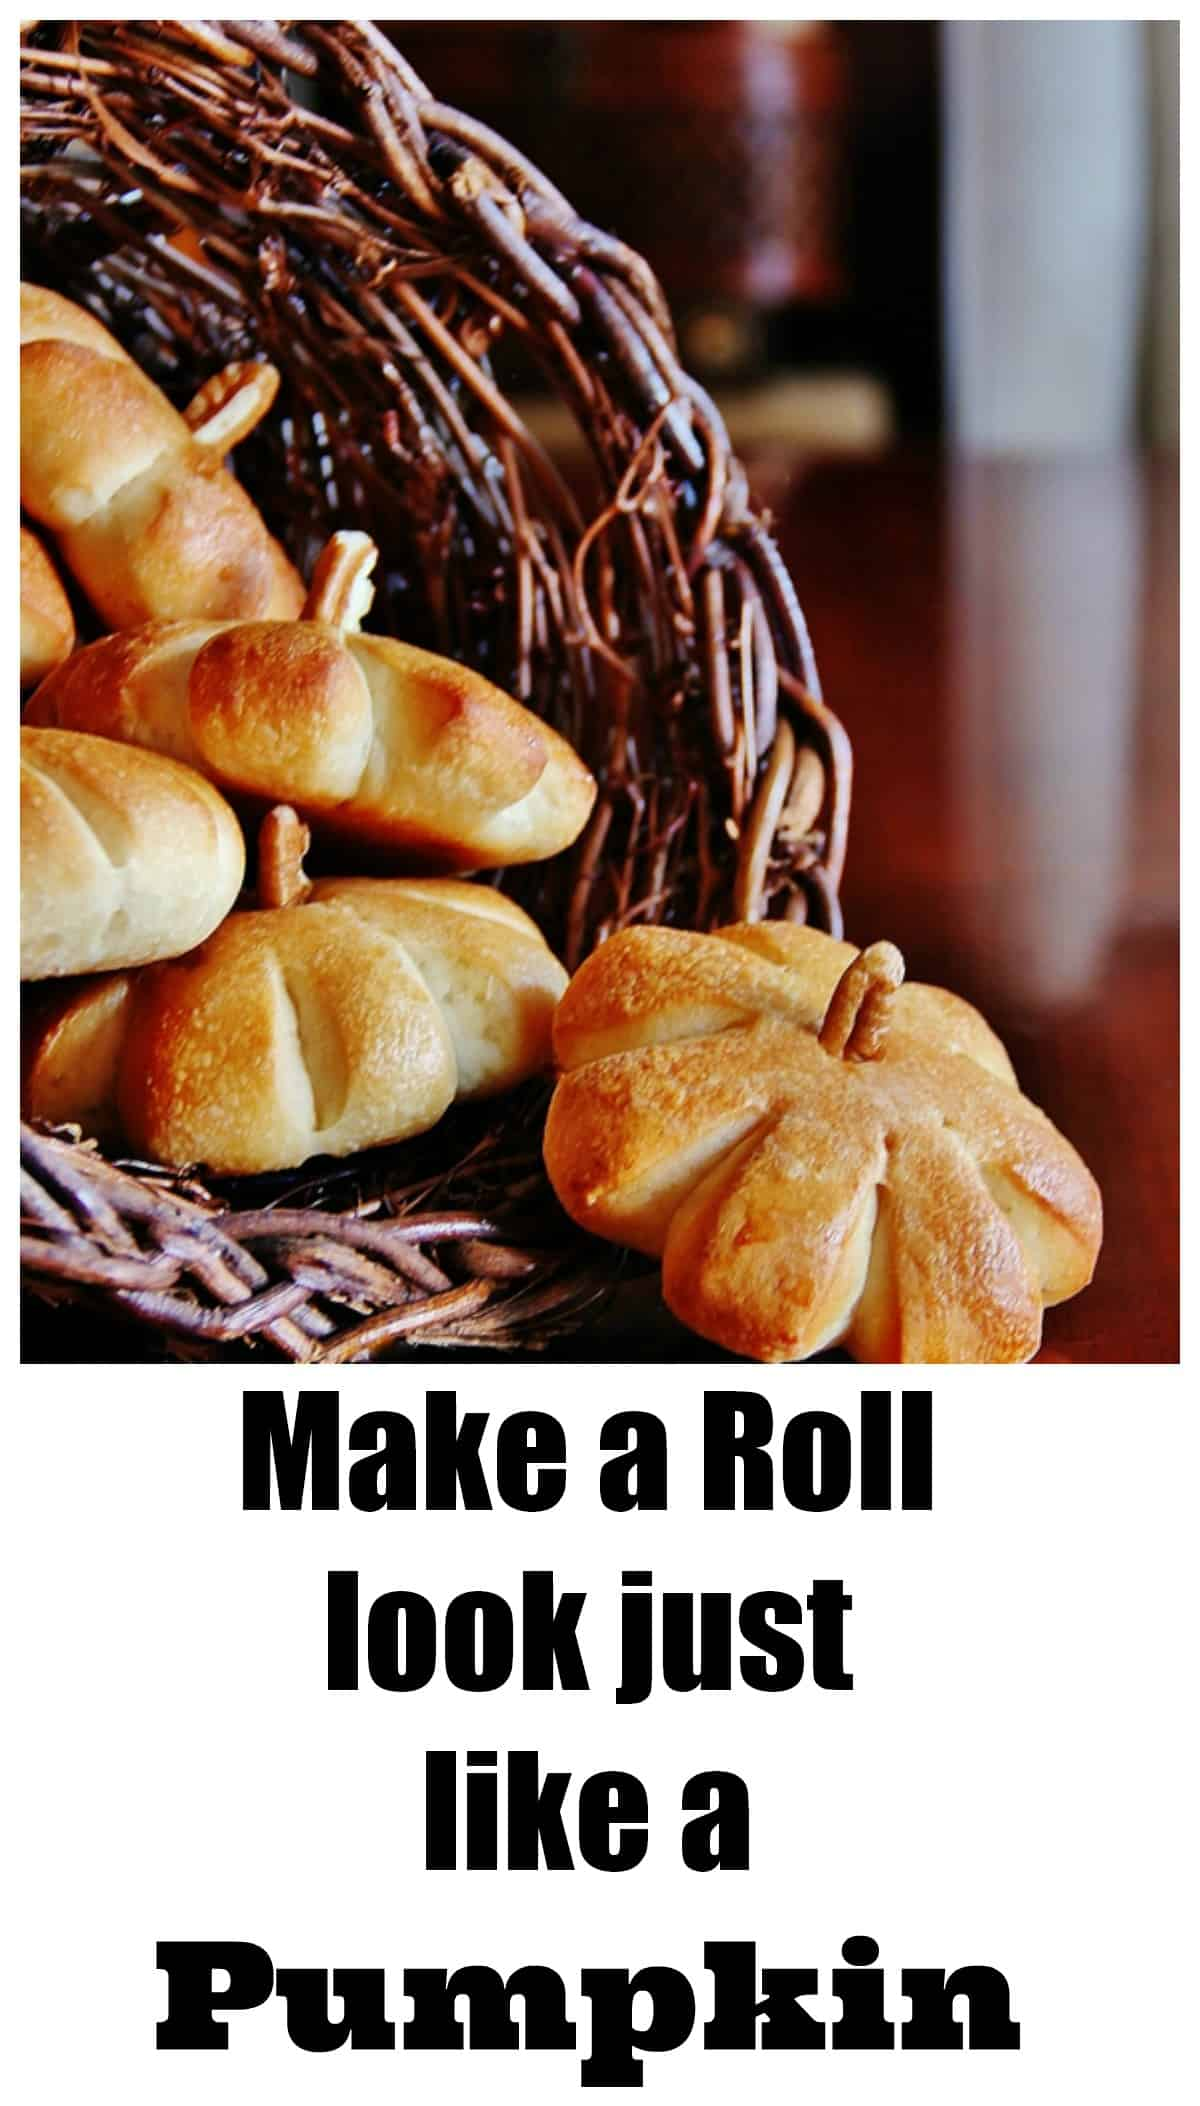 Make a roll that looks just like pumpkins